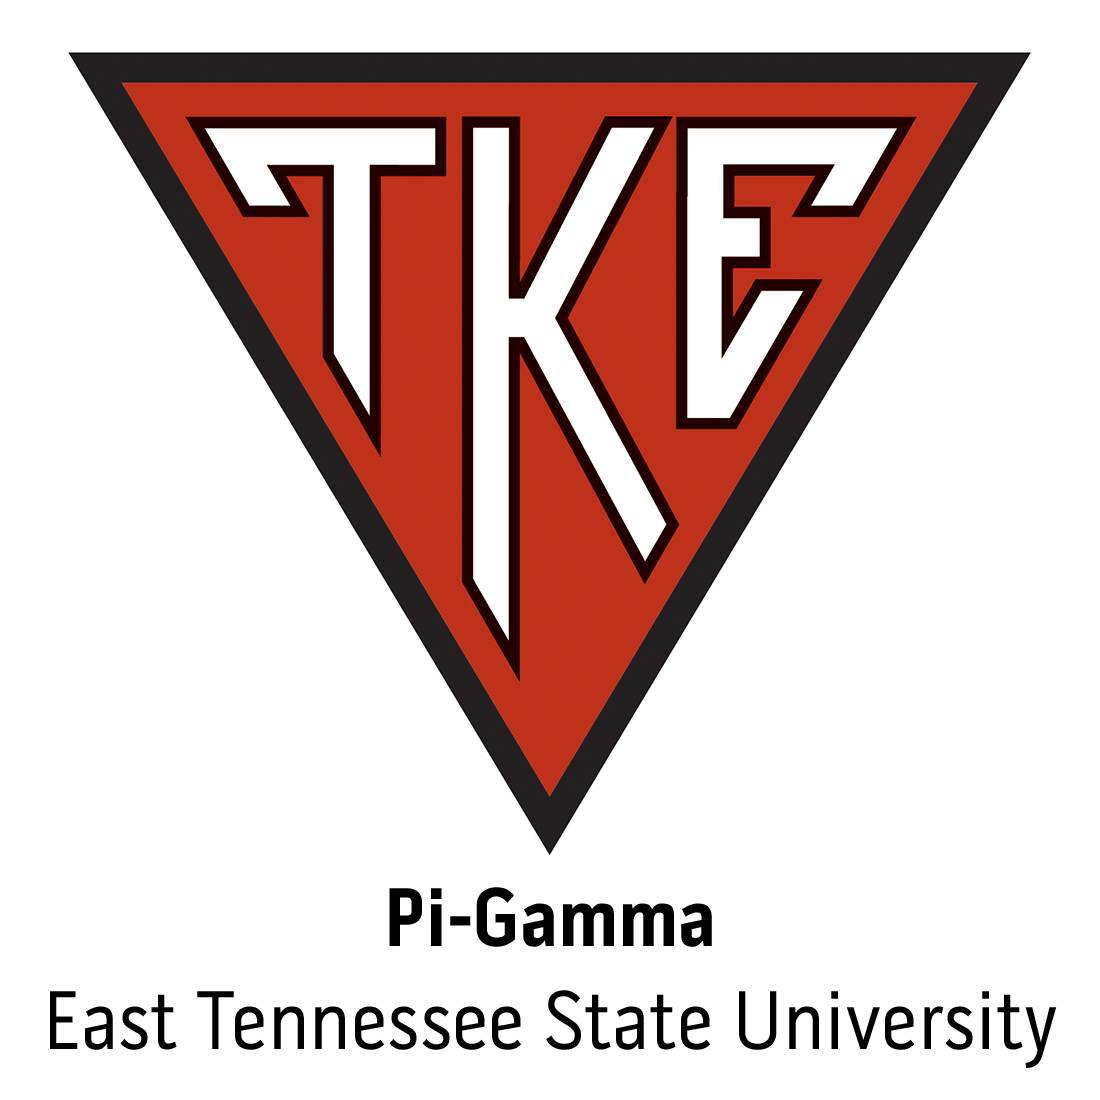 Pi-Gamma Chapter at East Tennessee State University